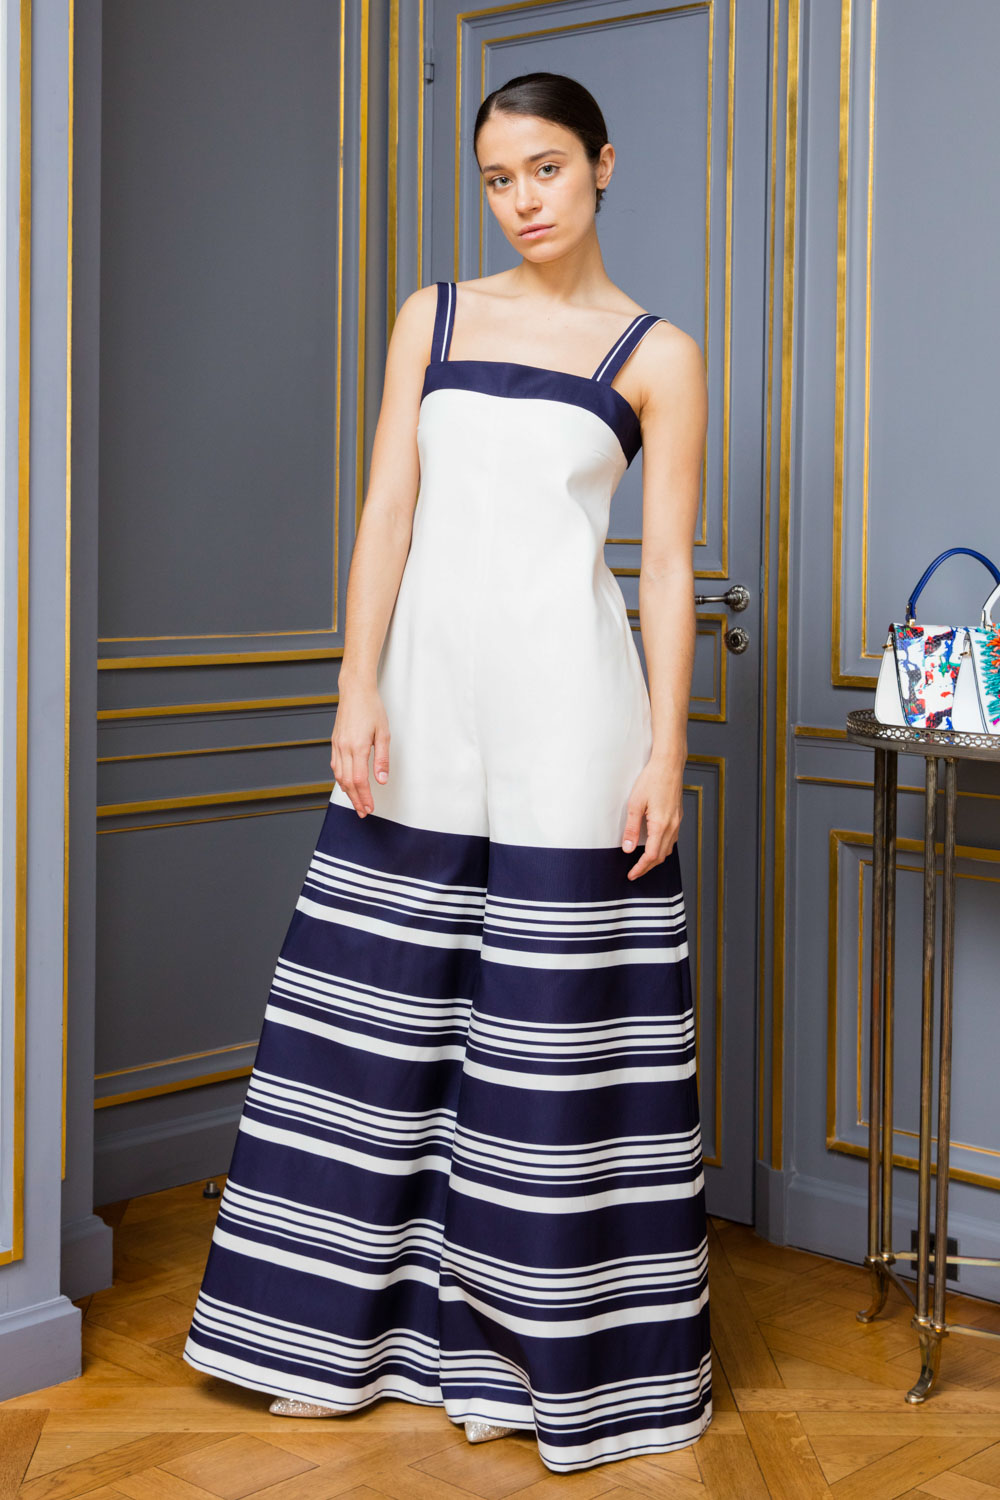 d83b73804578 boutiquelessuites.com - LesSuitesOnline buy Martin Grant - Navy and white  striped ultra-wide-leg jumpsuit on our website